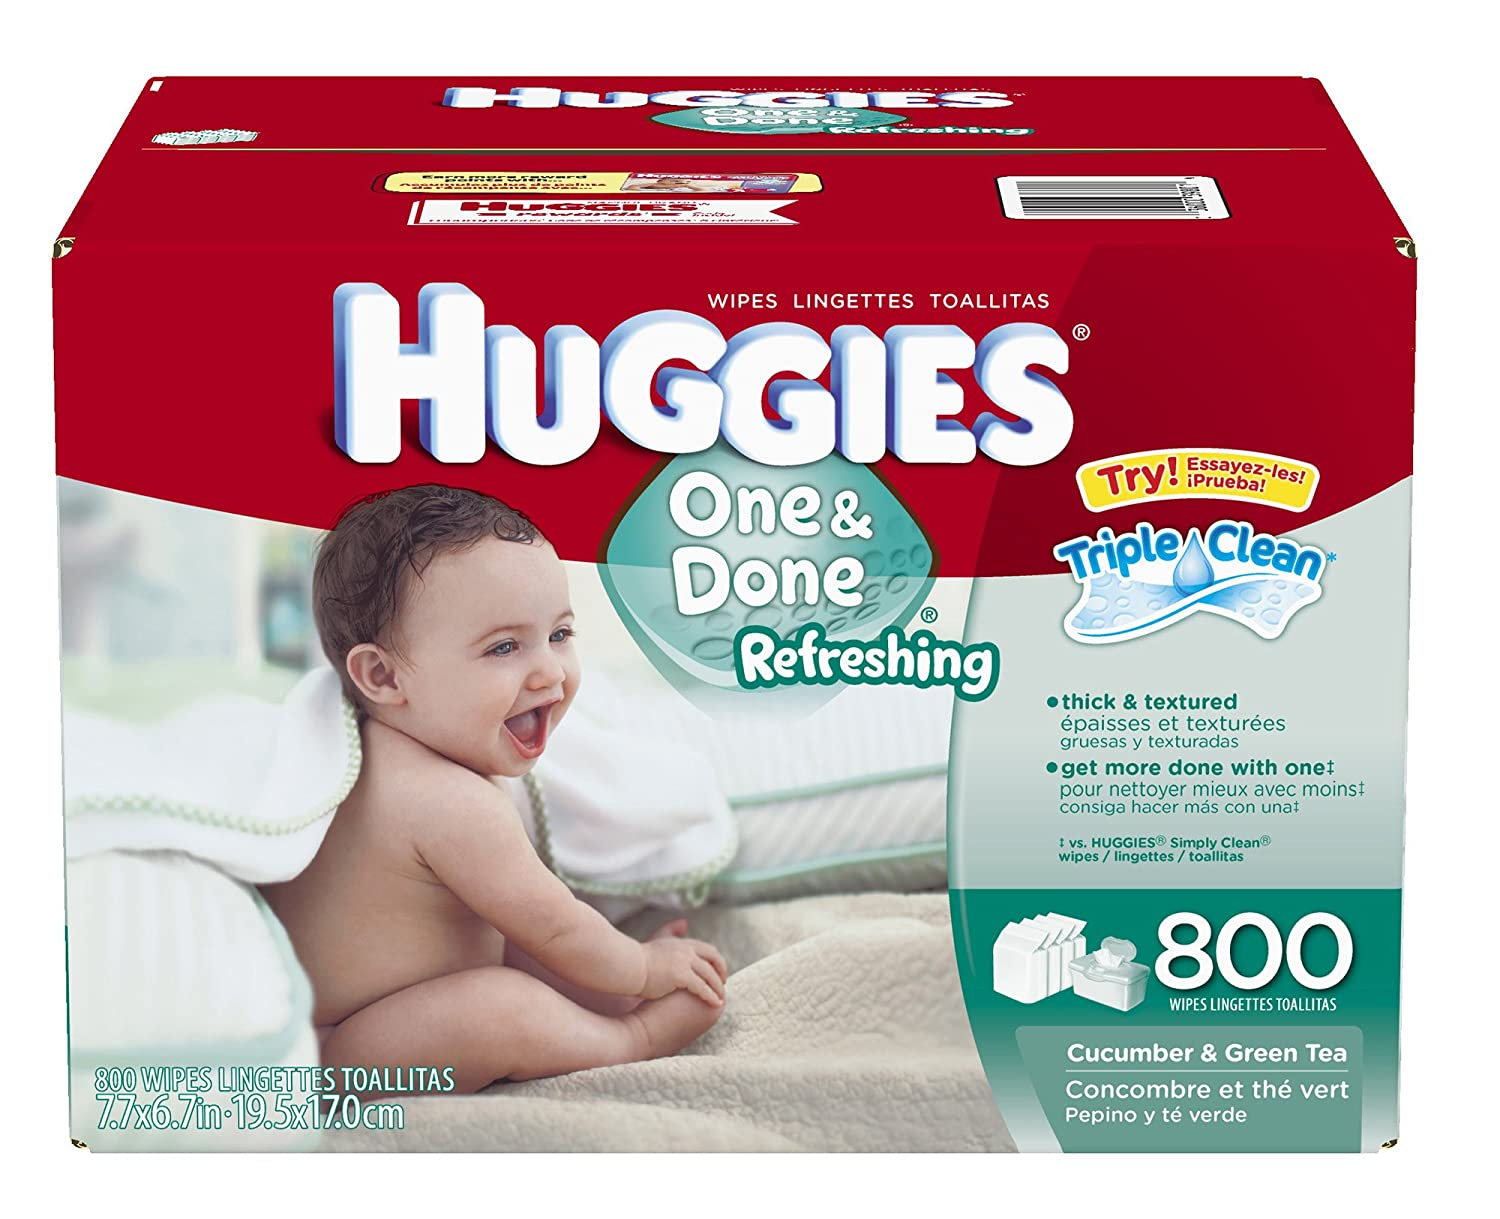 Amazon.com: Huggies One & Done Refreshing Baby Wipes, 800 ct.: Health & Personal Care